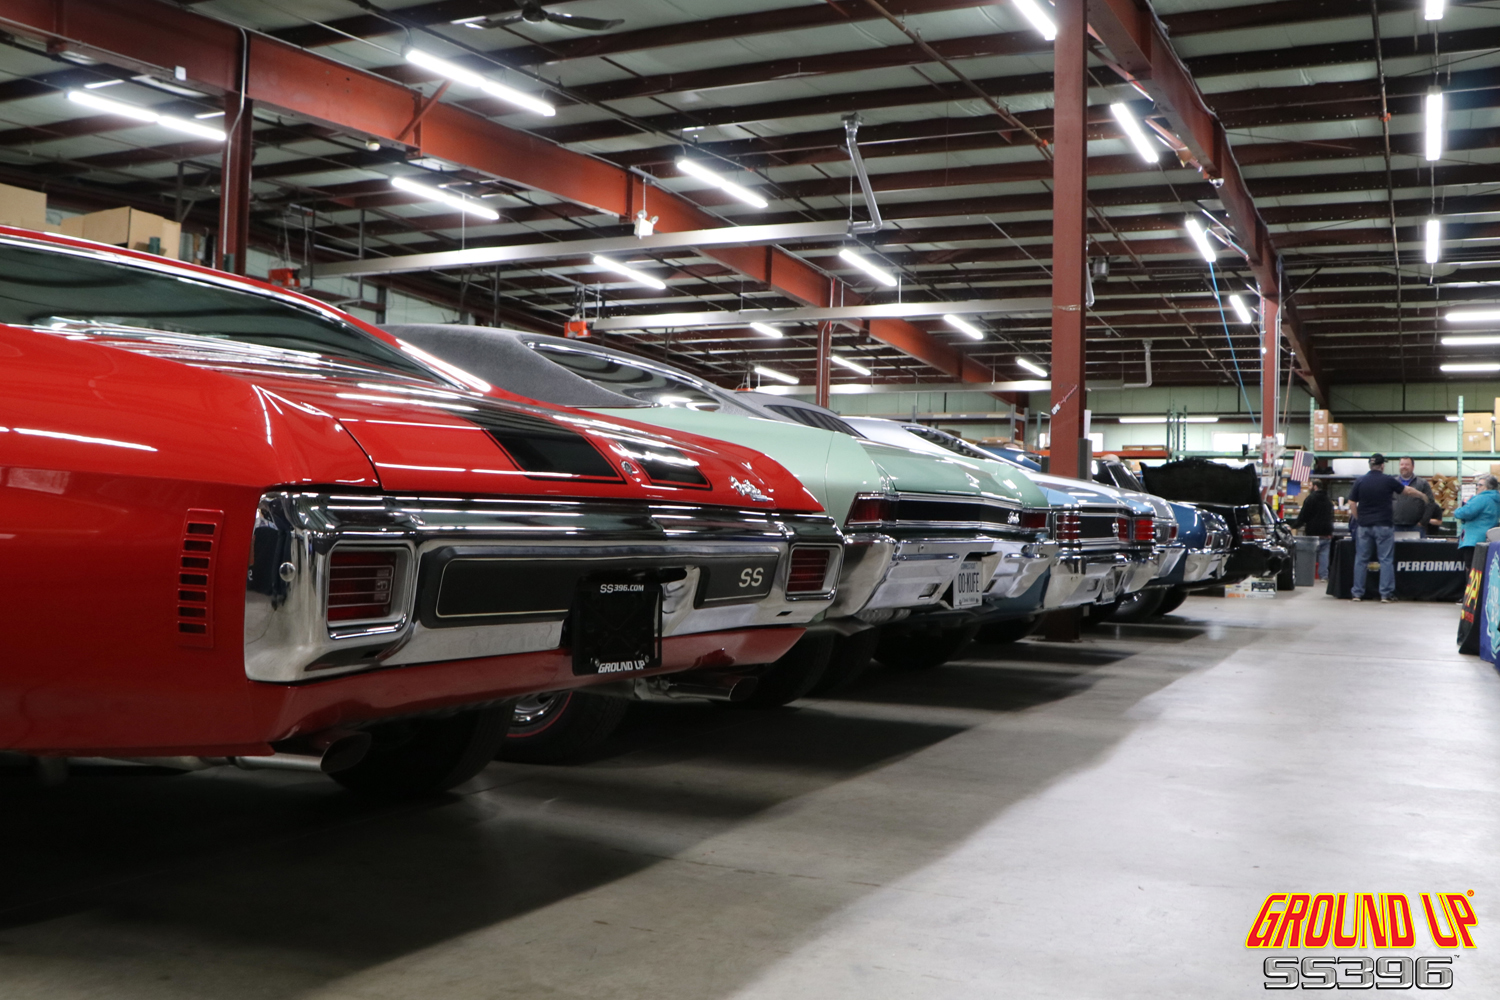 2019 Ground Up Vendor Expo - Taillights